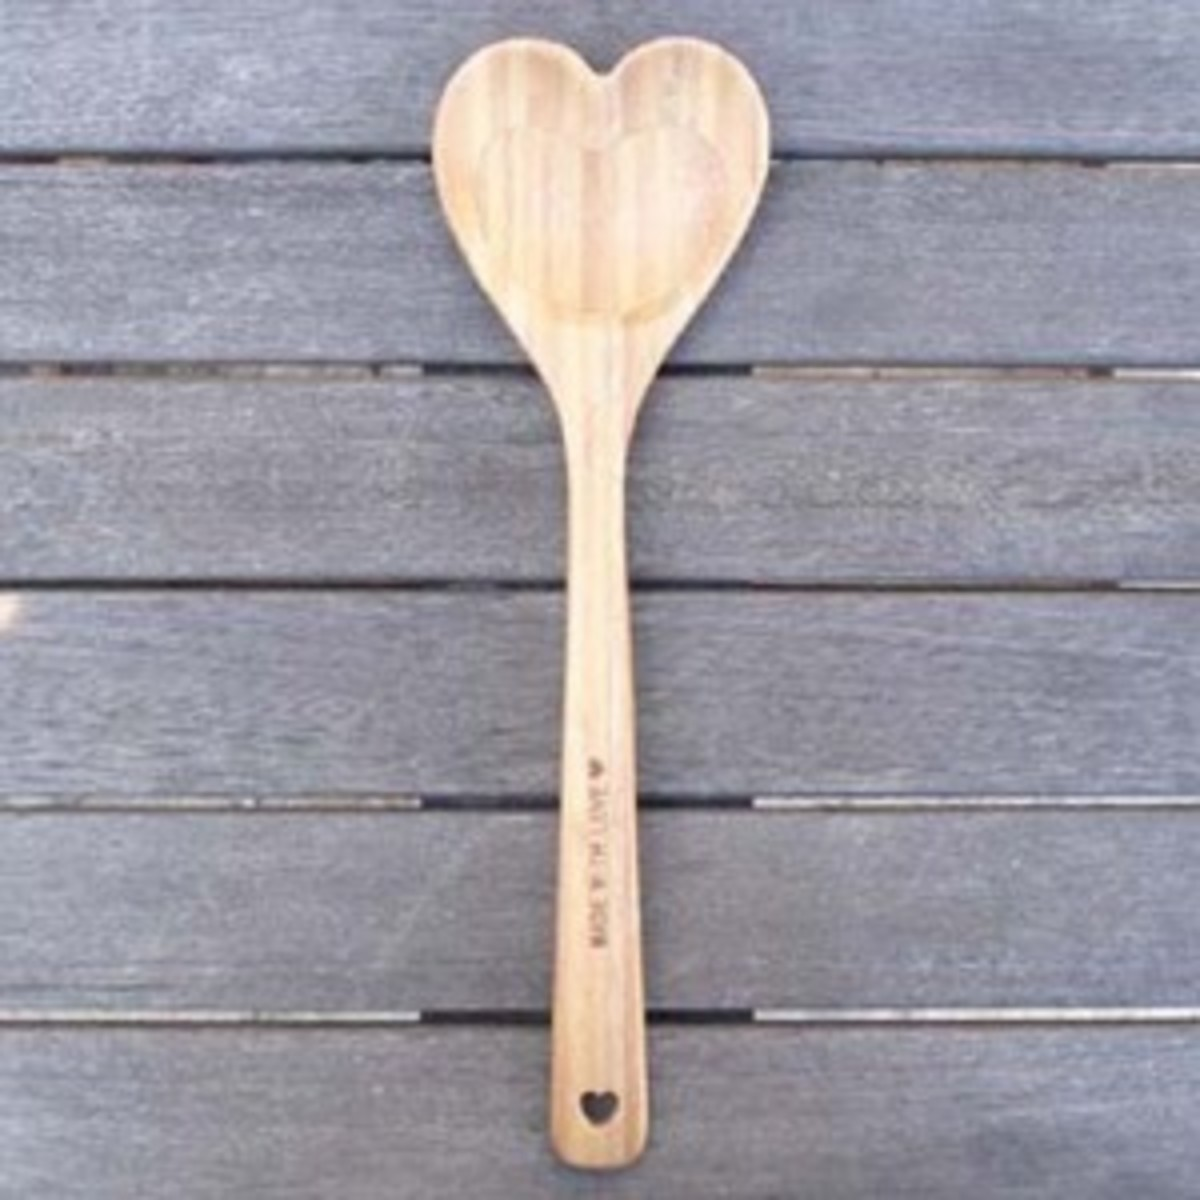 The Cult Of The Wooden Spoon Hubpages